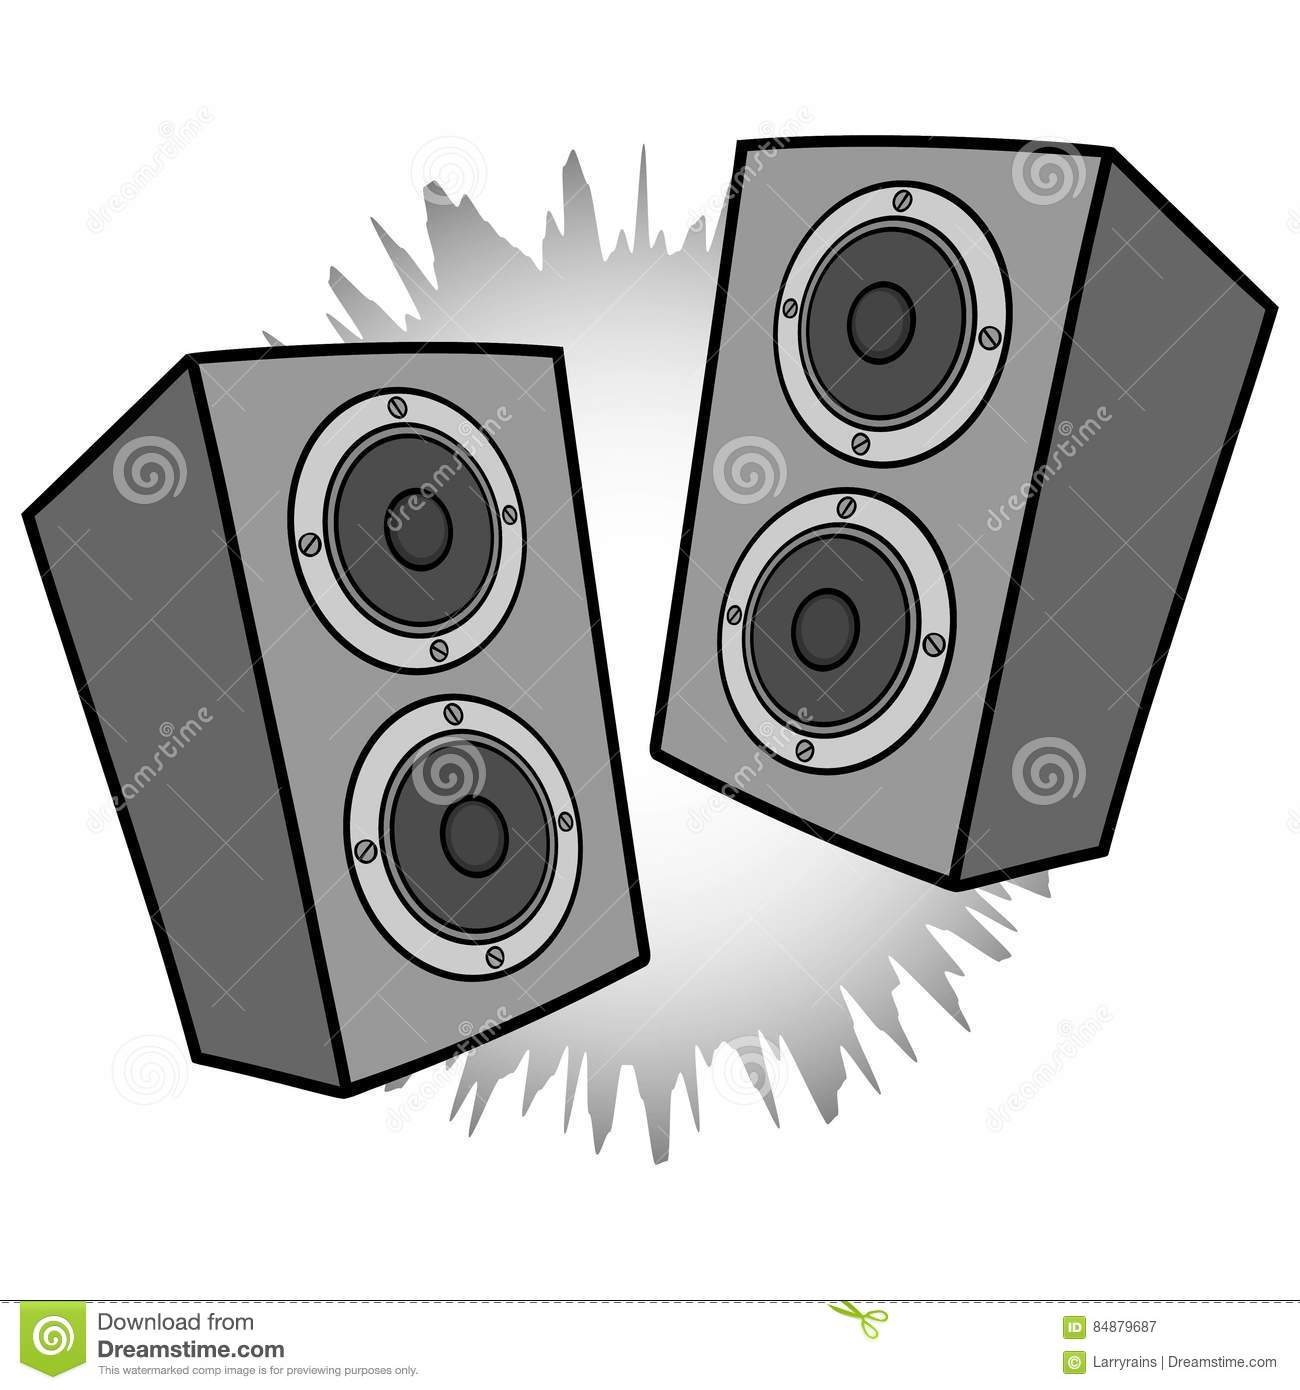 music speakers clipart. royalty-free vector. download stereo speakers illustration music clipart e